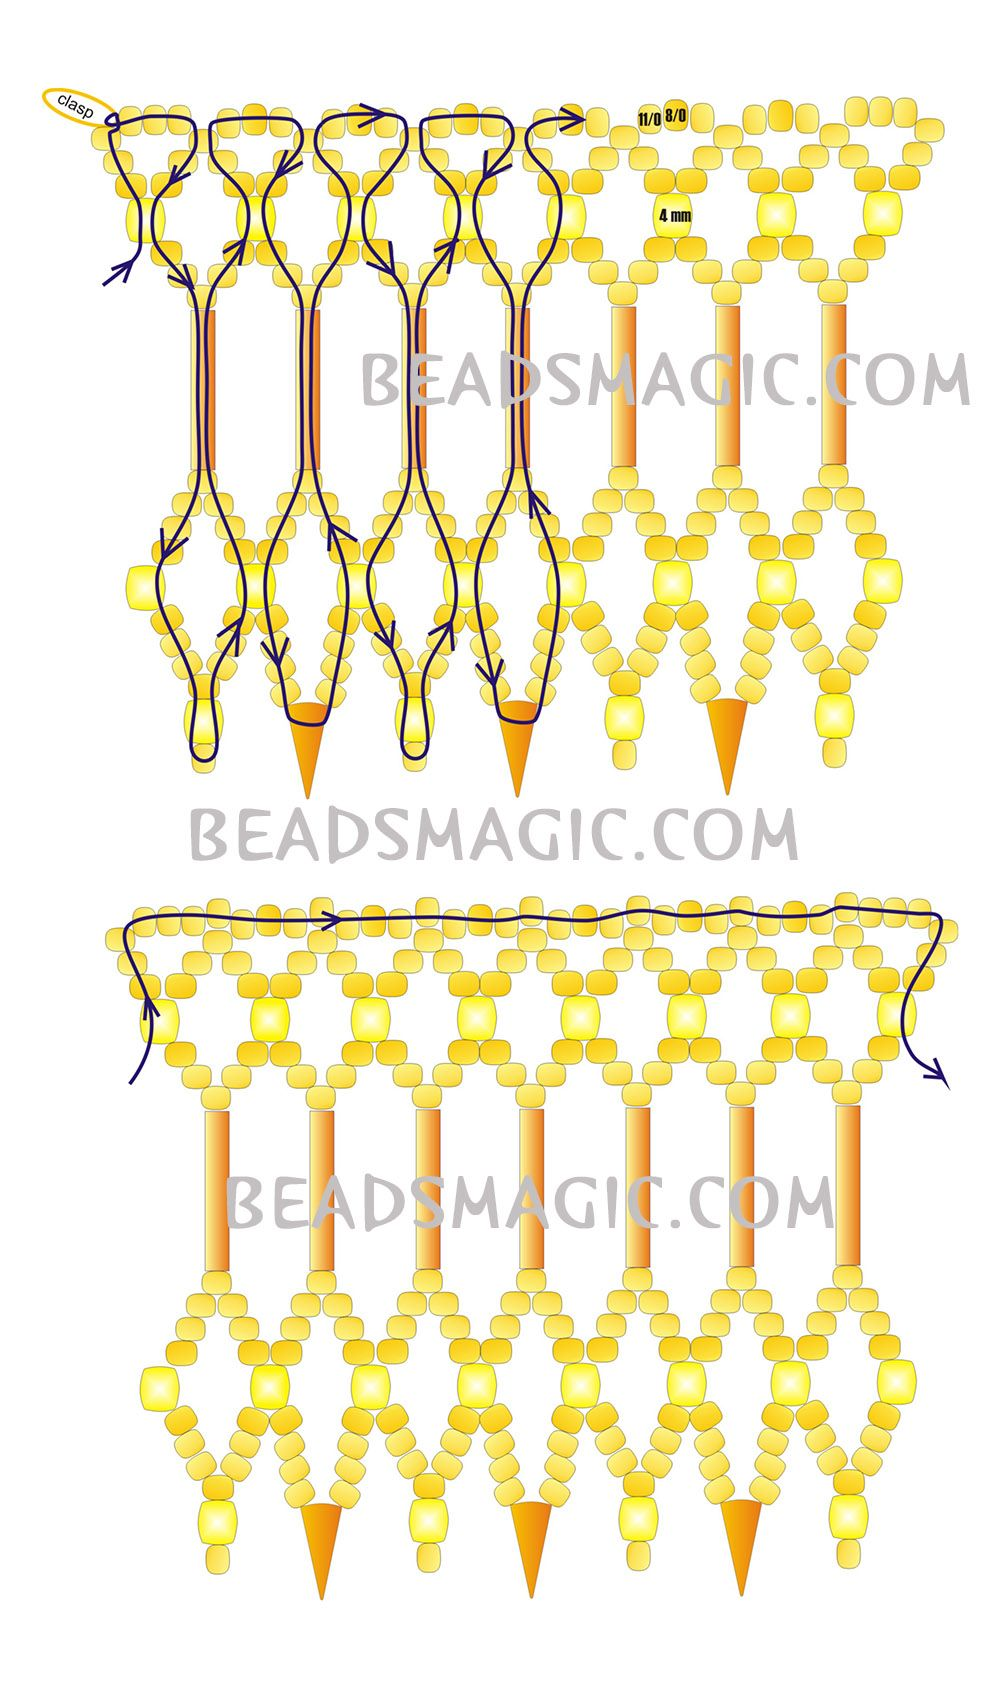 FREE Pattern for Necklace GOLDEN DUST | Beads Magic. Use: seed beads 11/0 and 8/0, faceted beads 4mm, spikes, bugle beads. Page 2 of 2